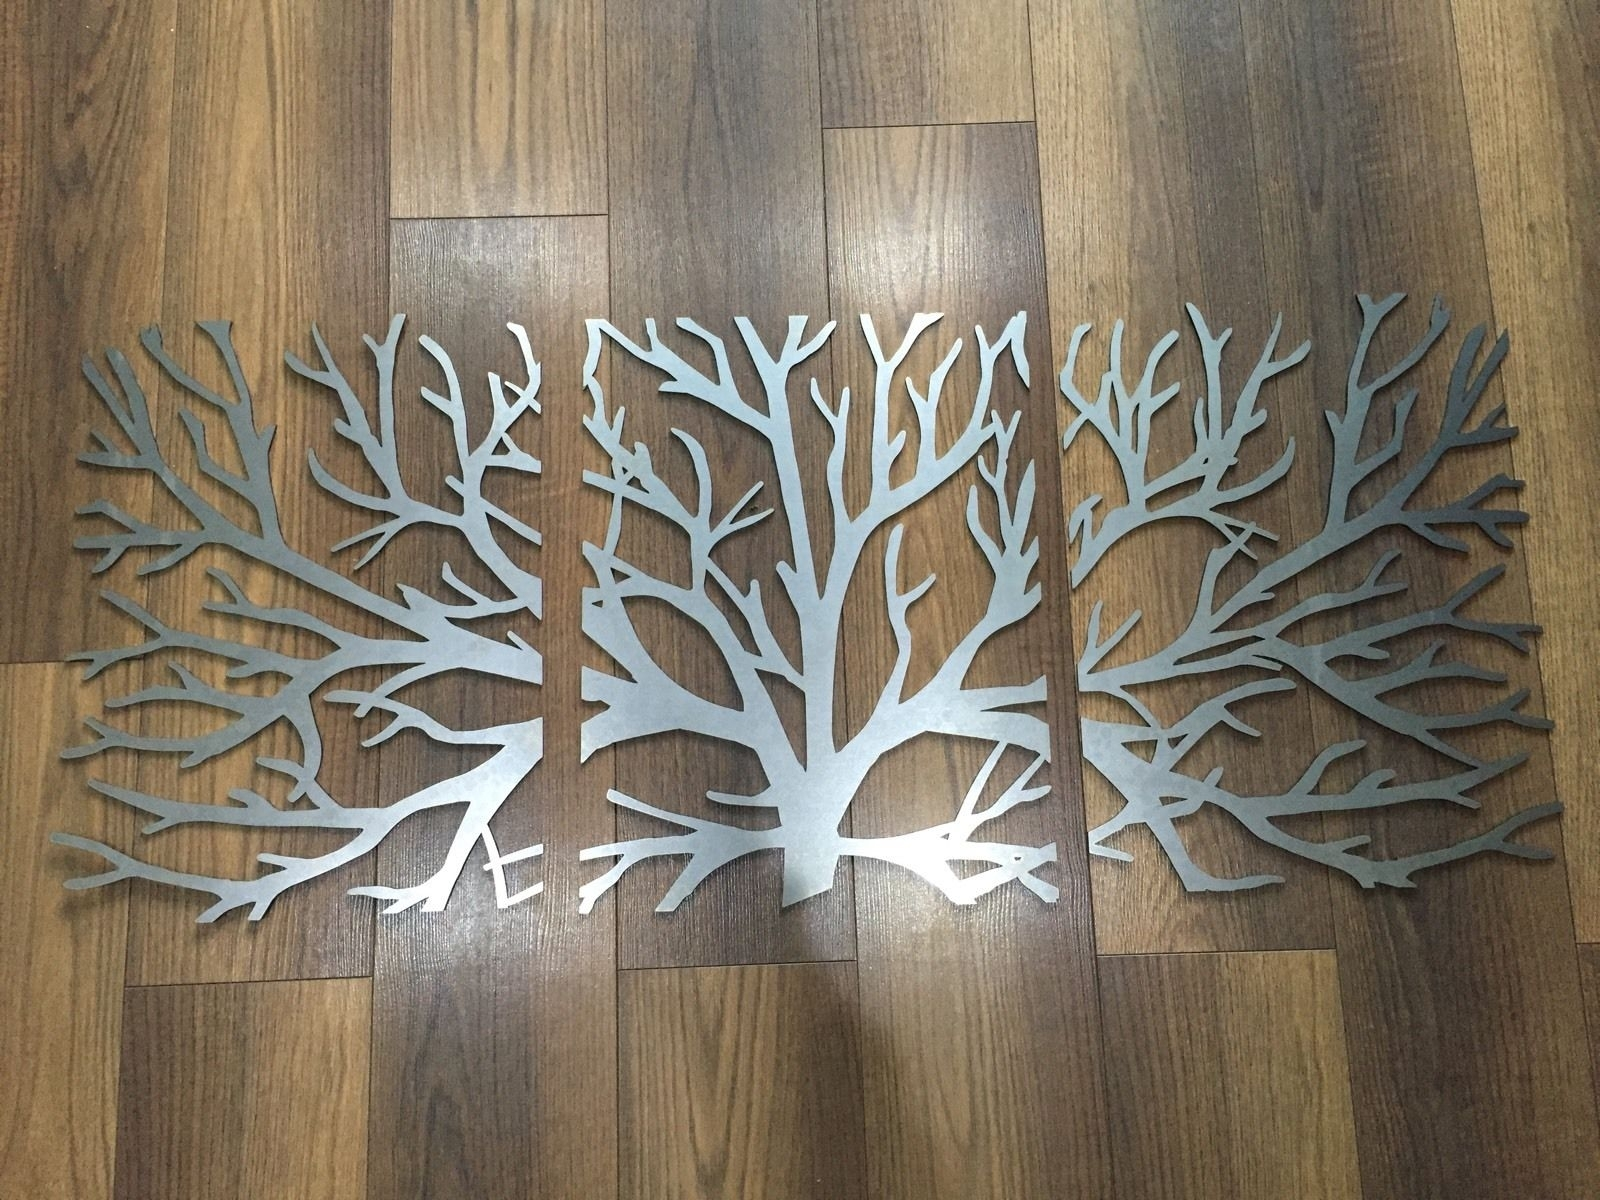 Wall Art Designs: Metal Wall Art Decor And Sculptures Wooden Metal Throughout Most Up To Date Abstract Leaf Metal Wall Art (View 14 of 20)